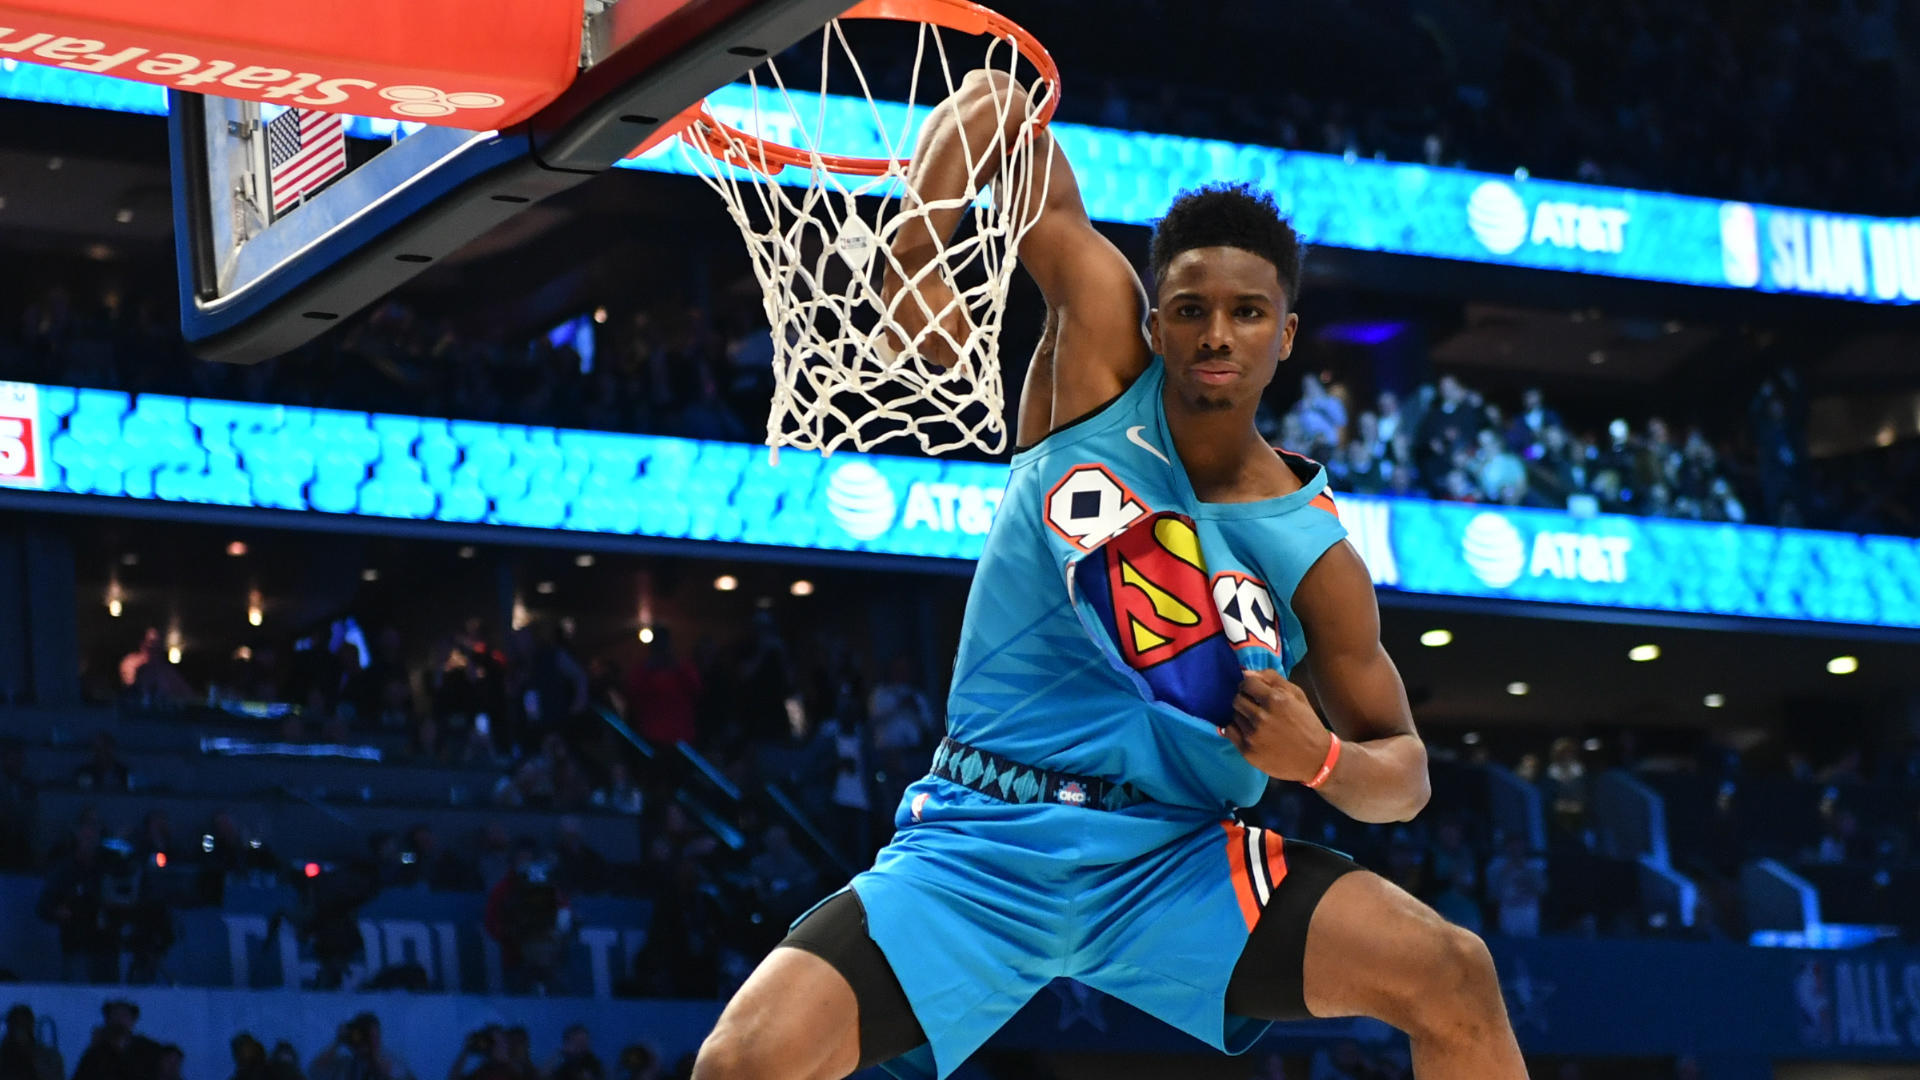 Thunder rookie Hamidou Diallo explains how his Shaq dunk came together and what's surprised him about NBA life